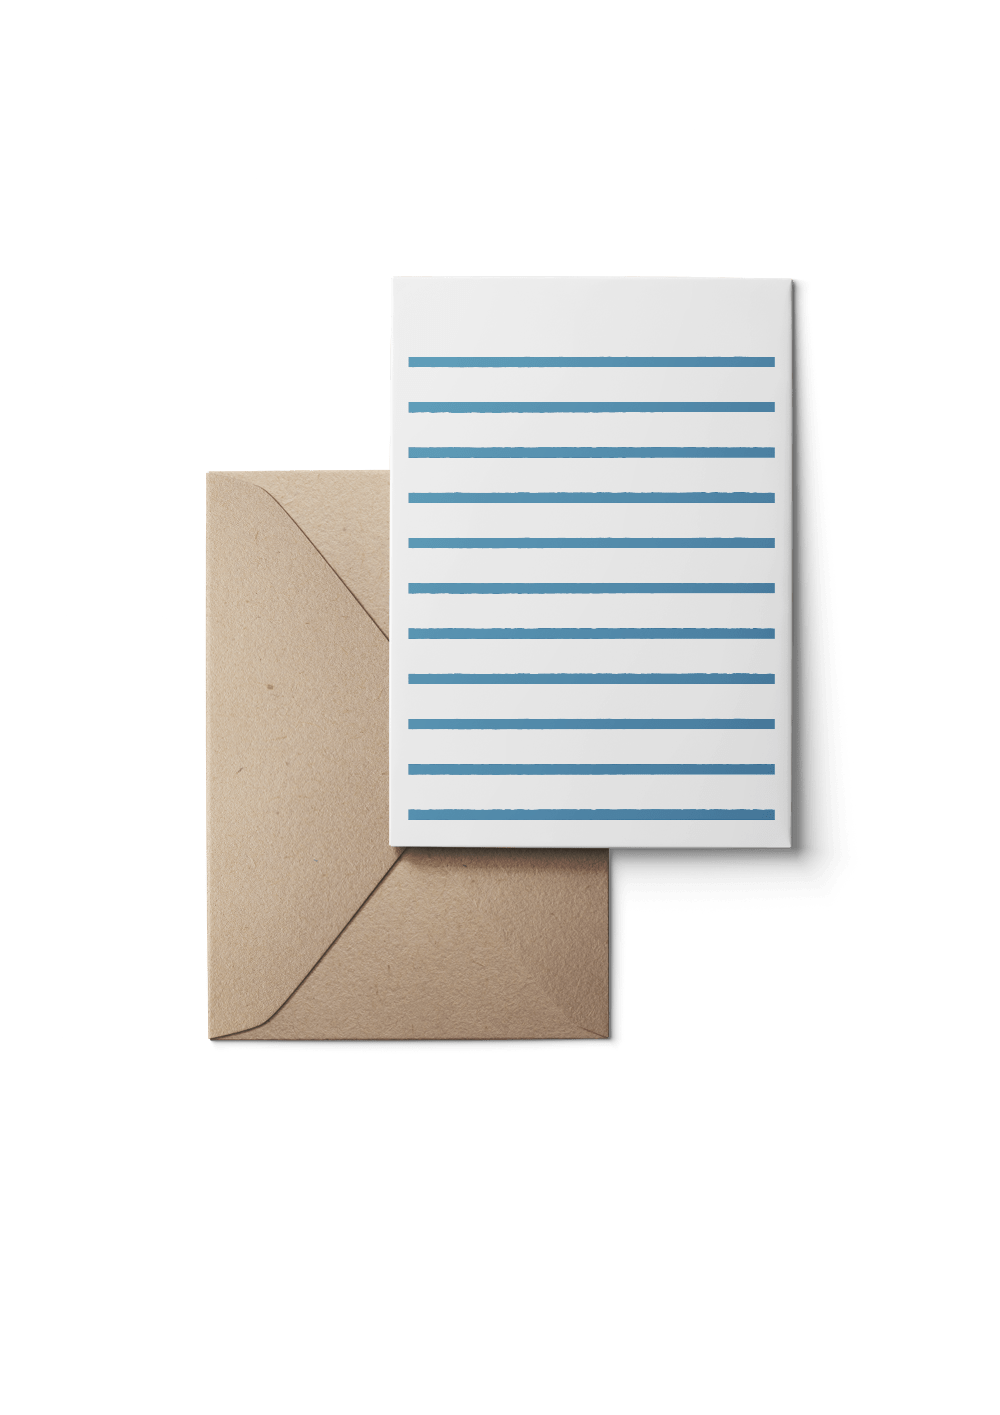 Custom Stripetown, Sky B, Eco, 6 Karten Set by Karten Design Fabrik. Supplier of designer Greeting Cards, Gift Wrap, Christmas Cards & Invitations to leading design stores including Connox, Modulor, Magazin & Manufactum.